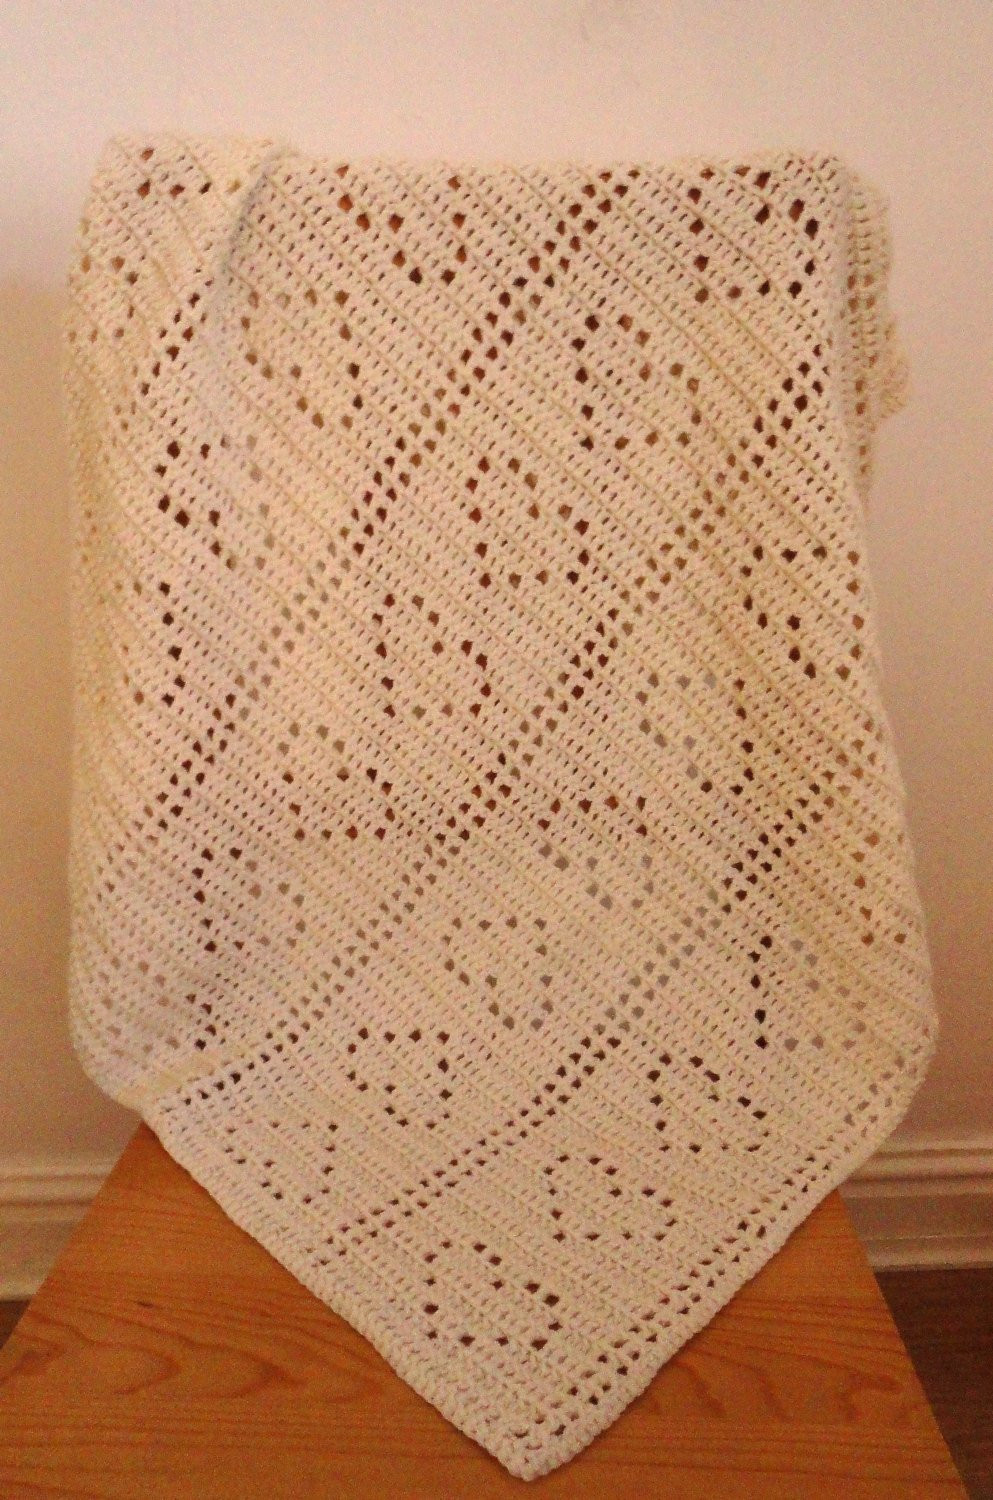 Crochet Heart Afghan New topsy Turvy Heart Crochet Baby Blanket Pattern From Of Adorable 47 Pictures Crochet Heart Afghan